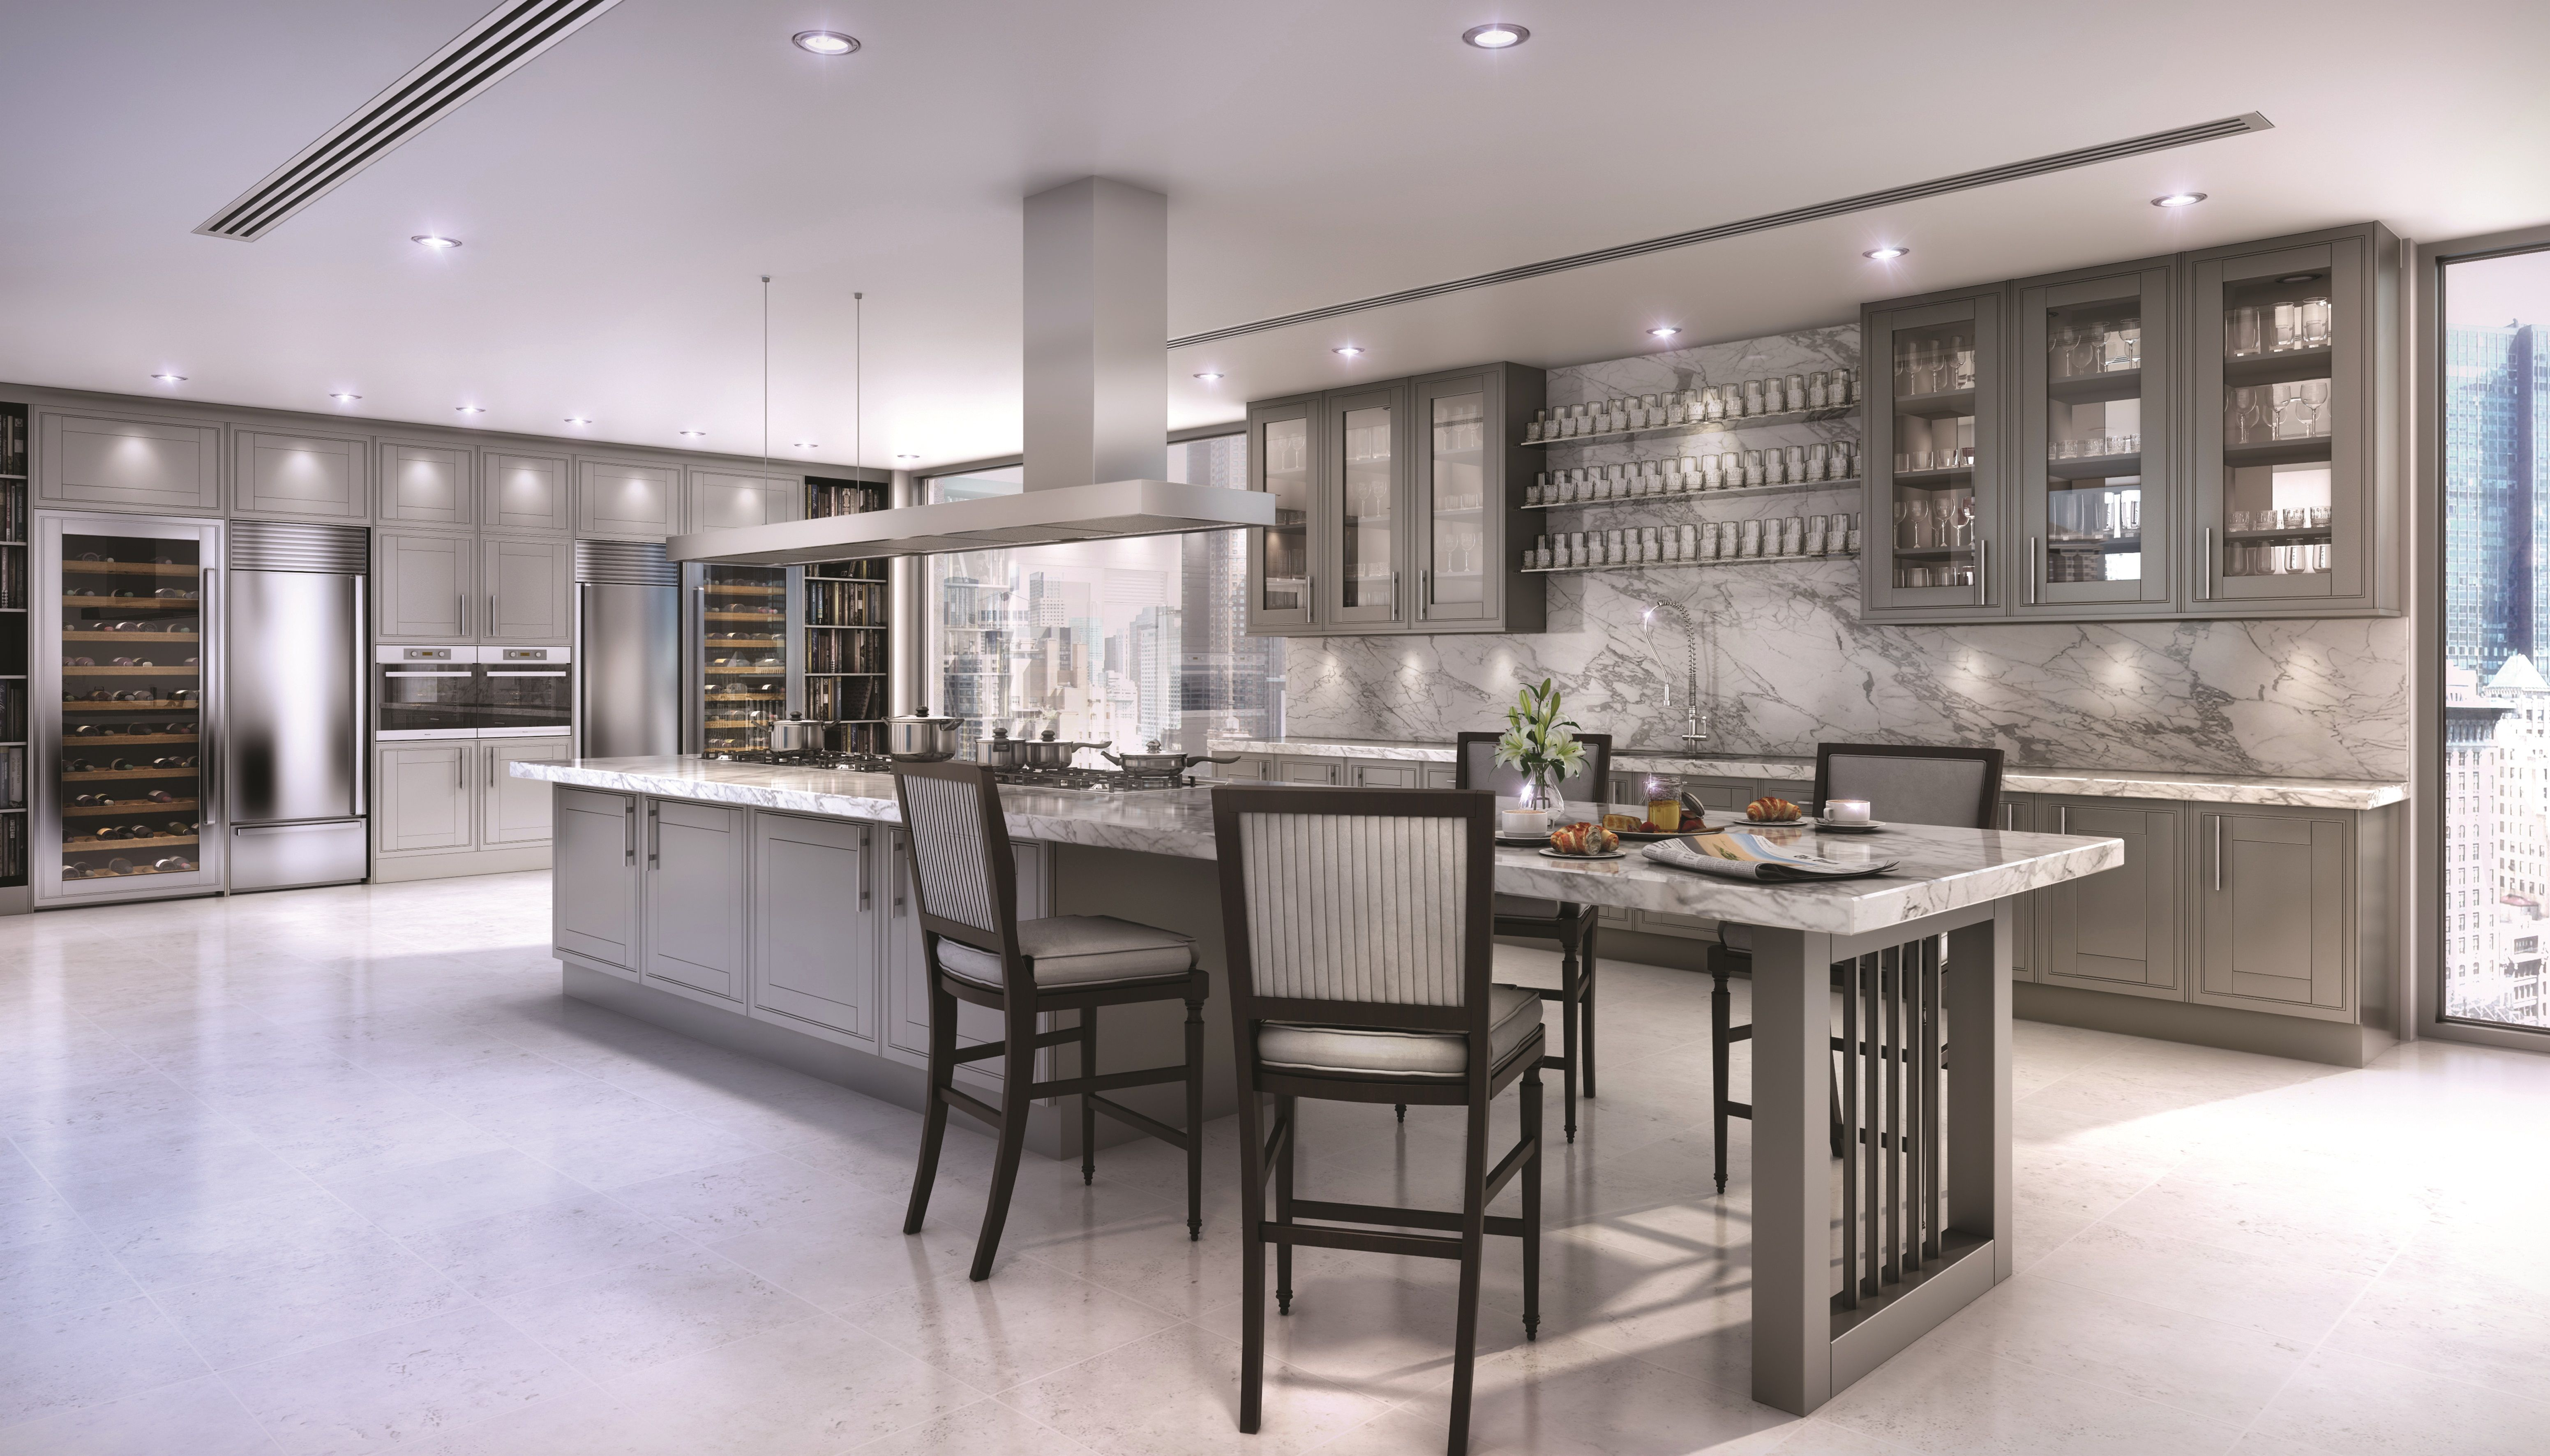 clive christian contemporary kitchen finished in grey clive christian kitchens modern kitchen on l kitchen interior modern id=67776